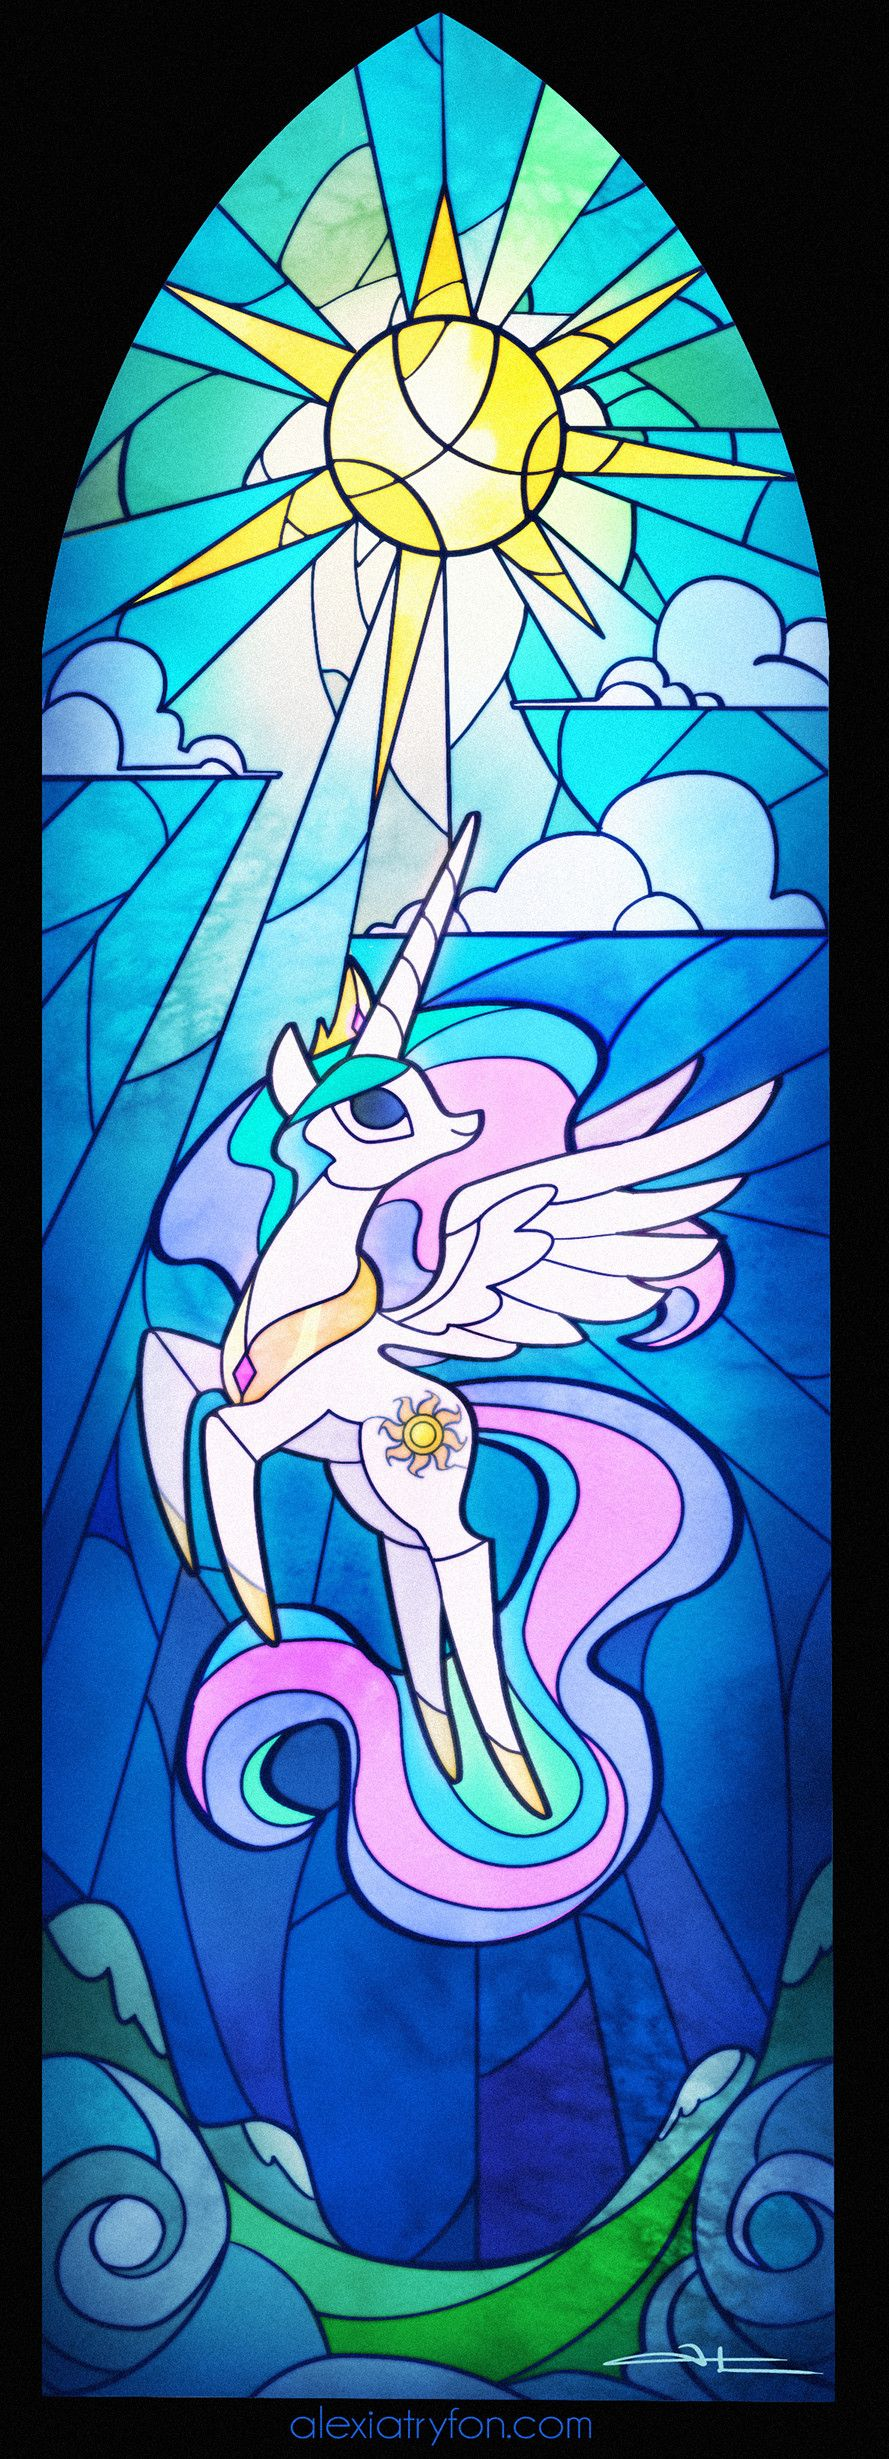 celestia windows